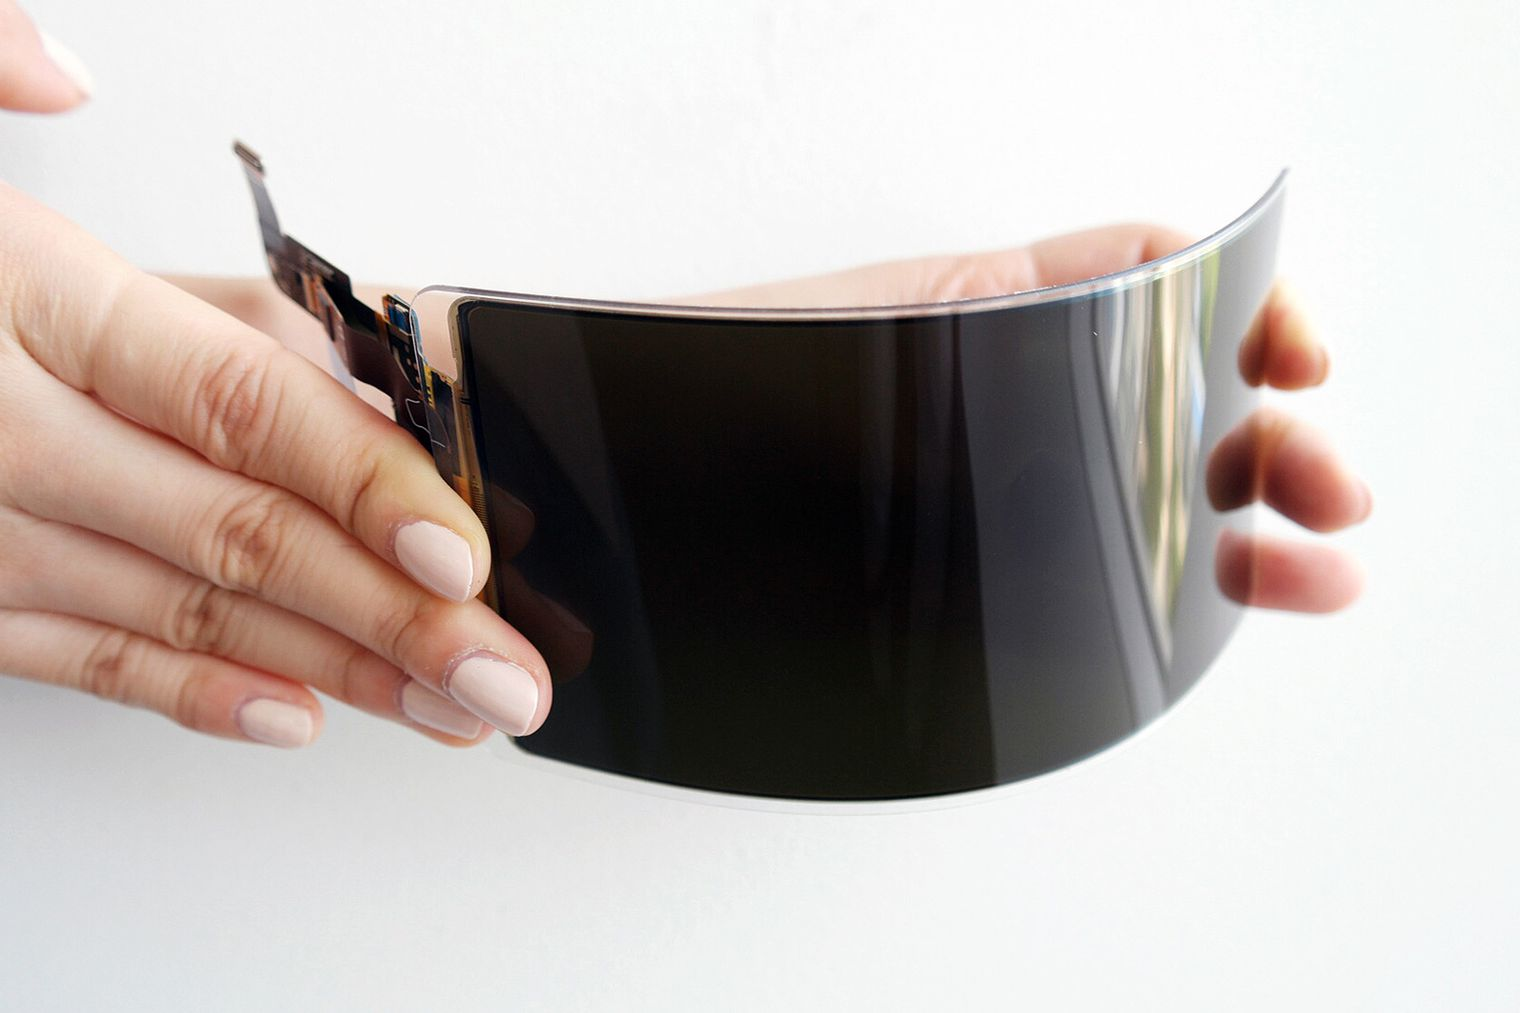 Samsung has created an unbreakable OLED display